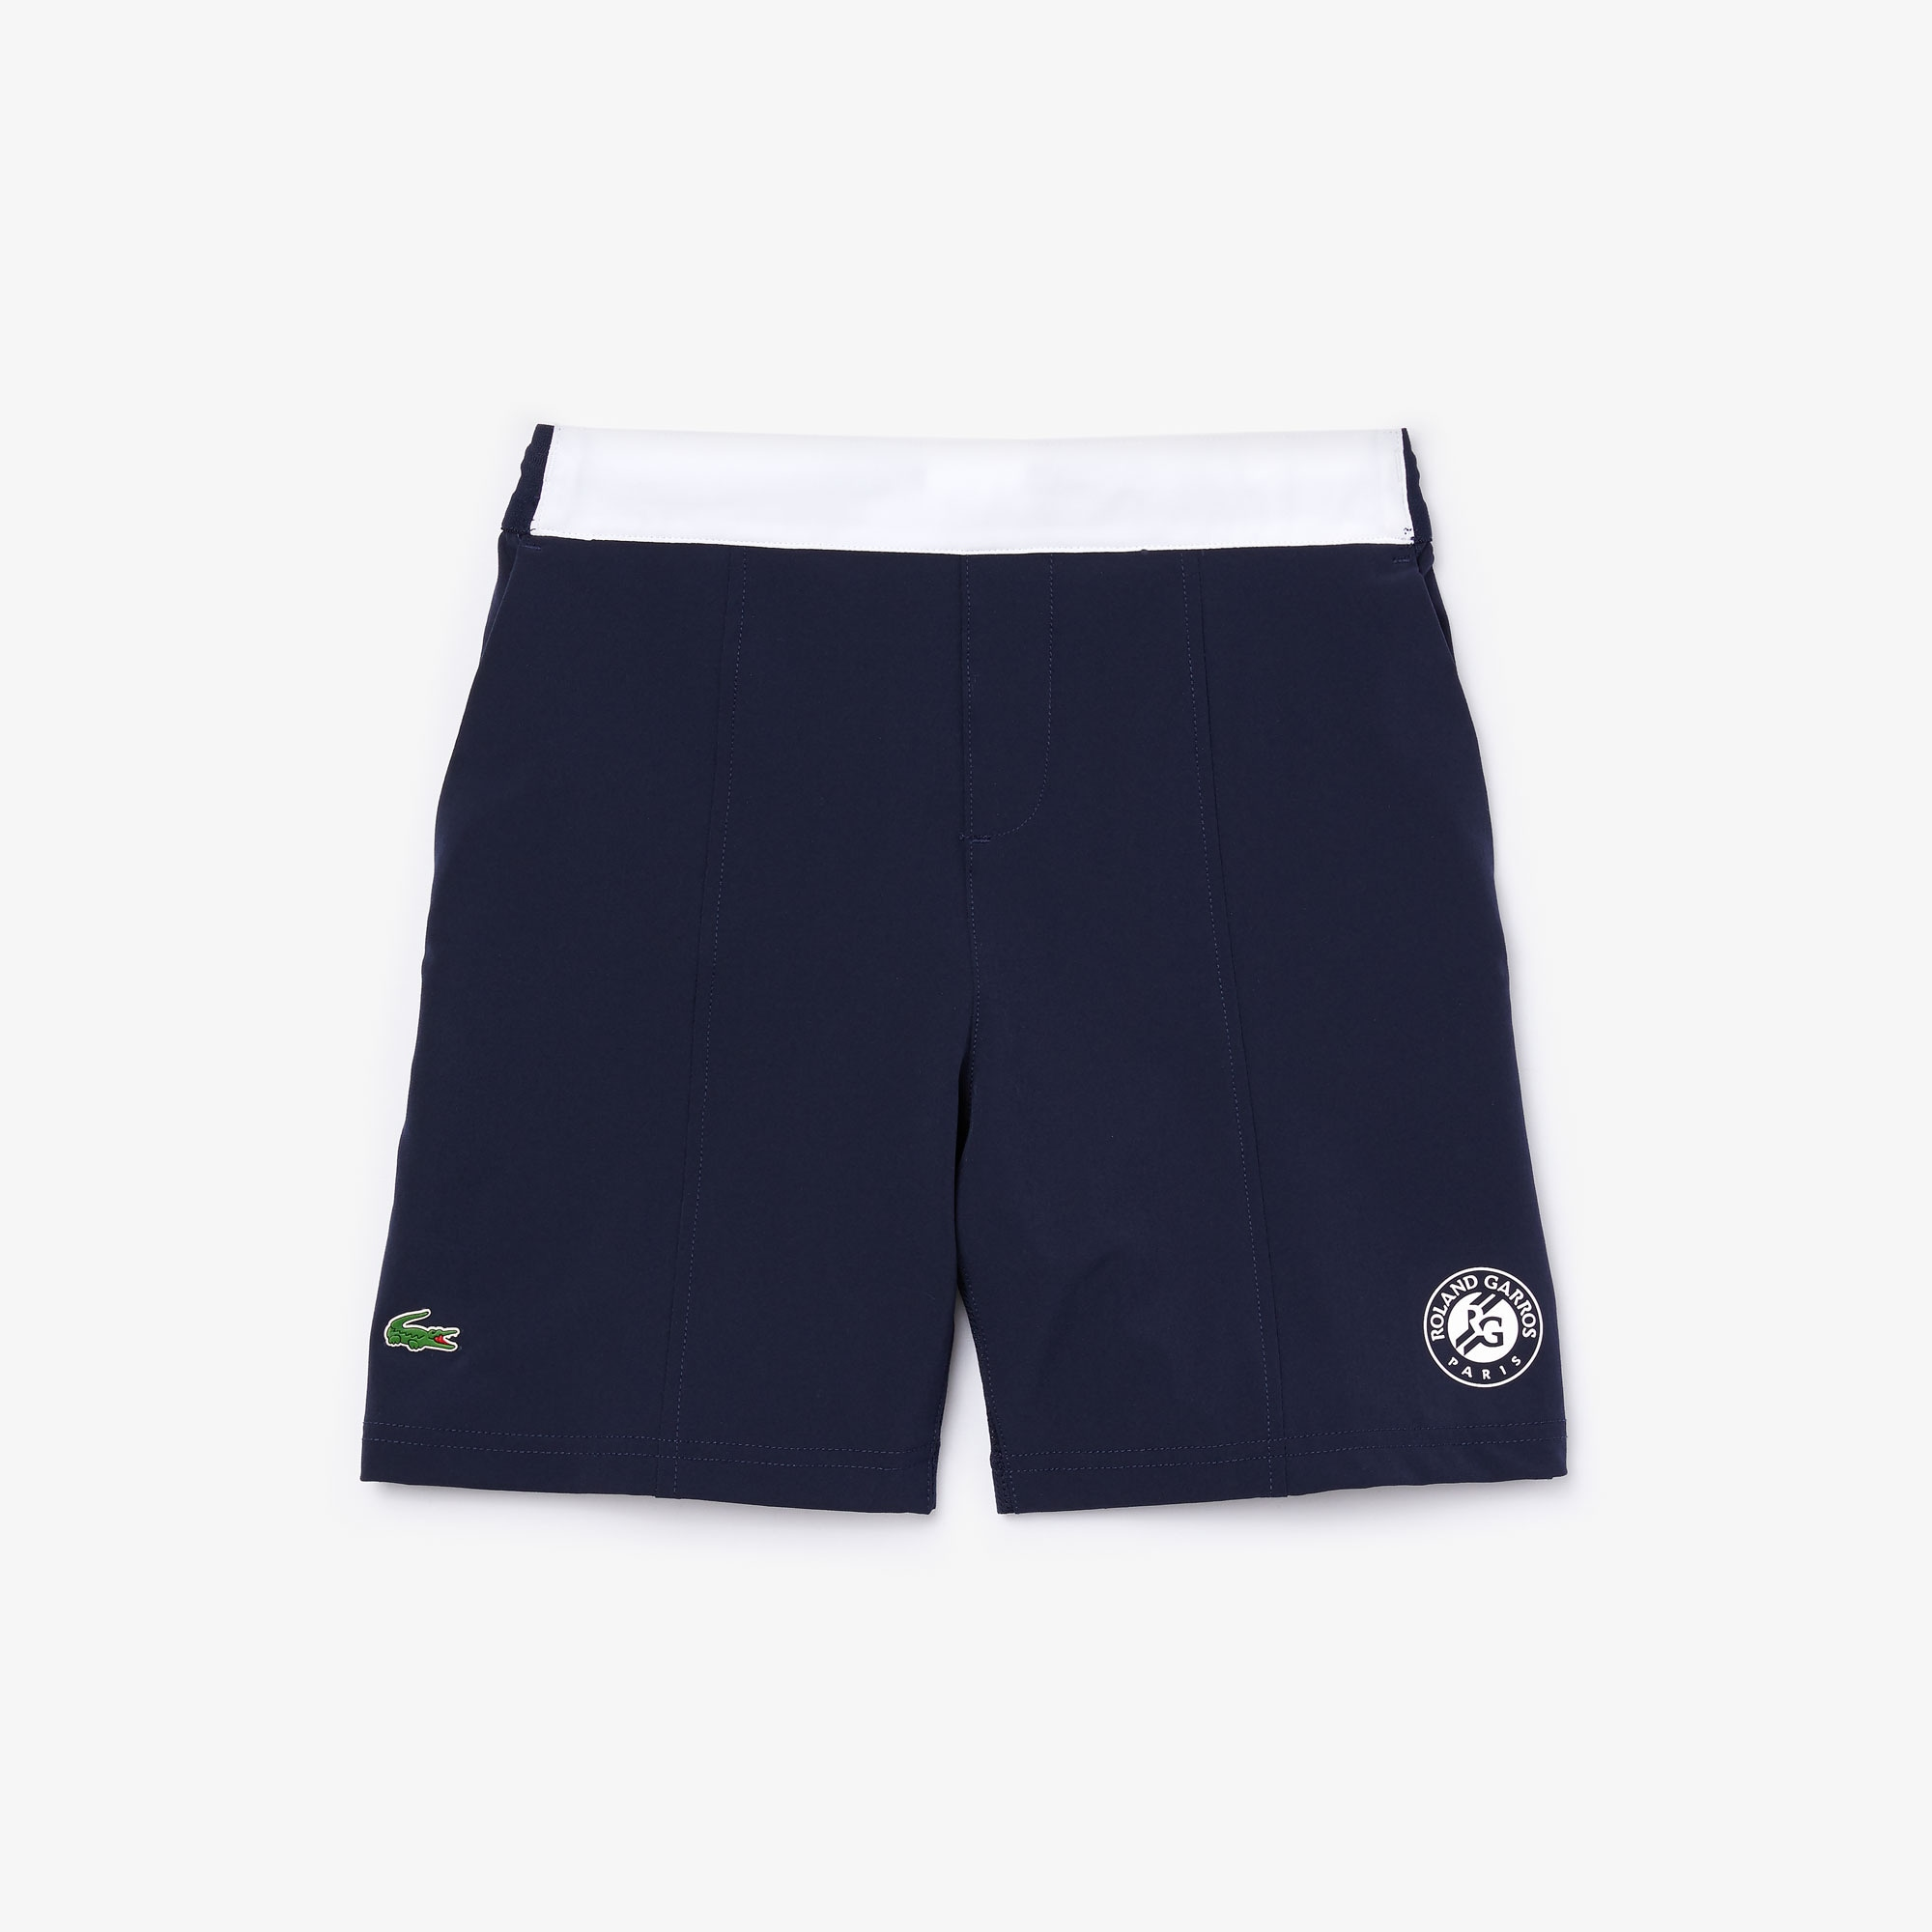 라코스테 Lacoste Boys SPORT Roland Garros Two-Tone Shorts,Navy Blue / White • 2HC